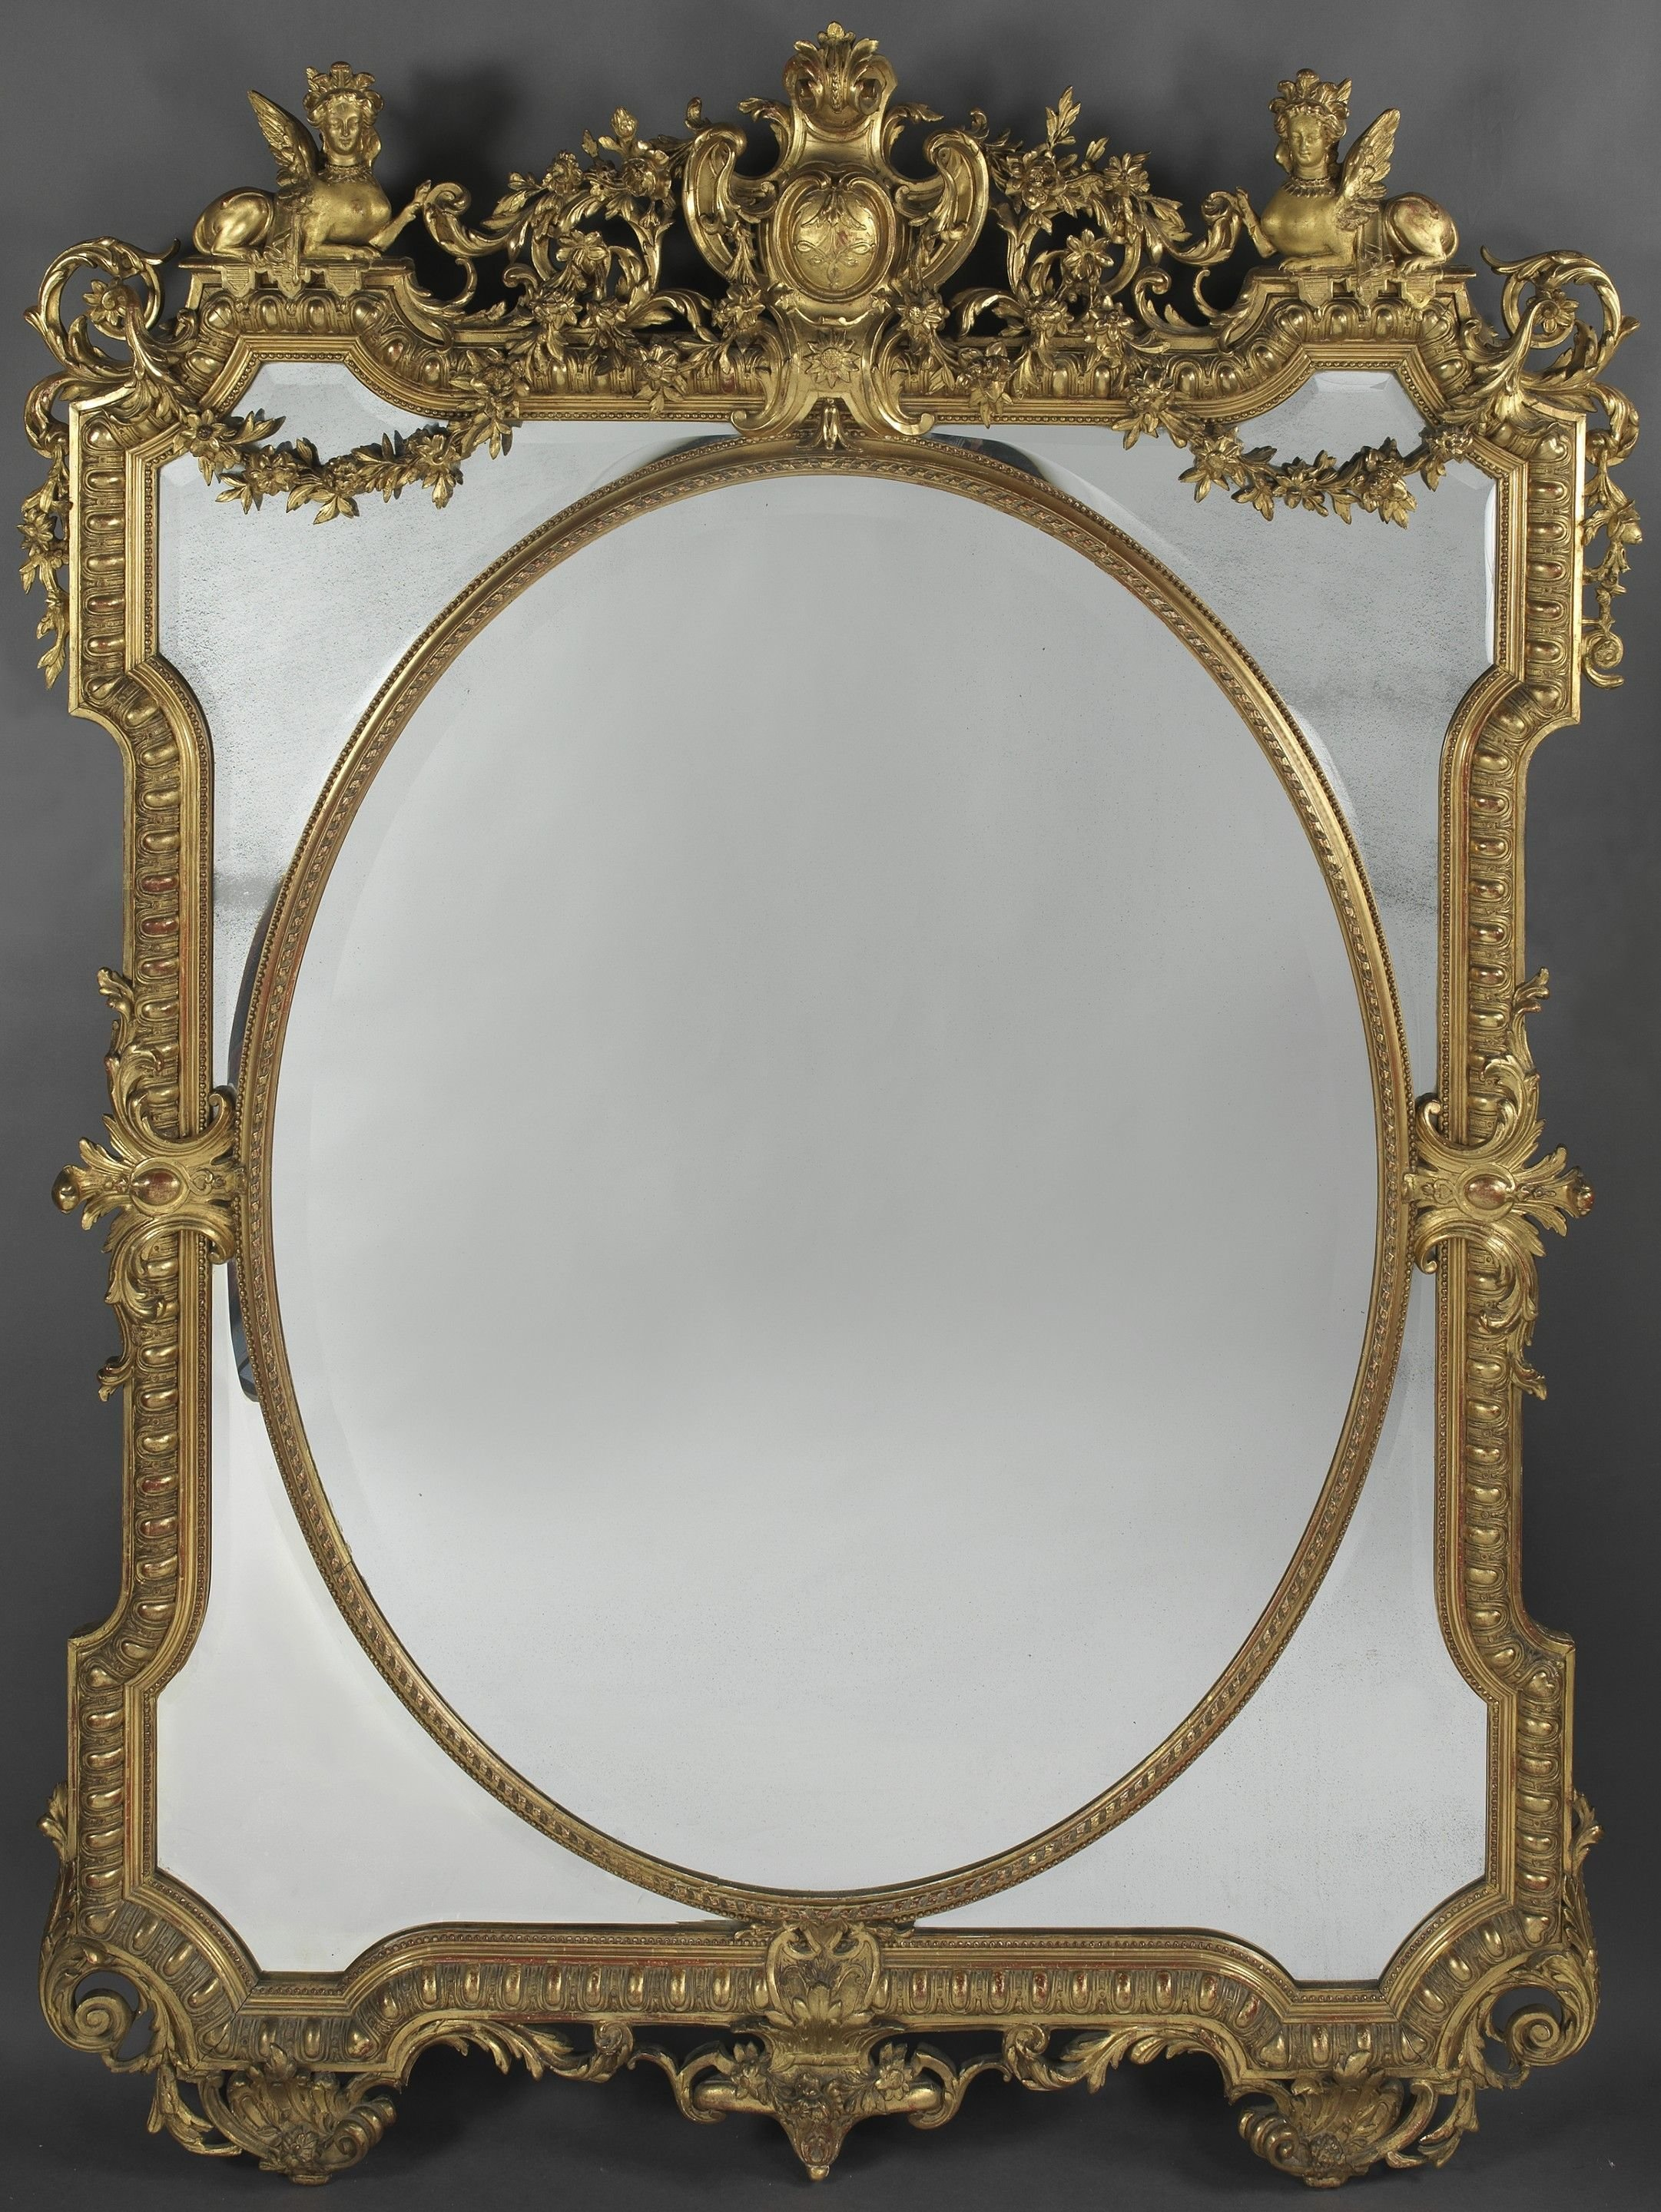 The Best A Fine Louis Xiv Style Marginal Frame Mirror Adrian Alan Pictures